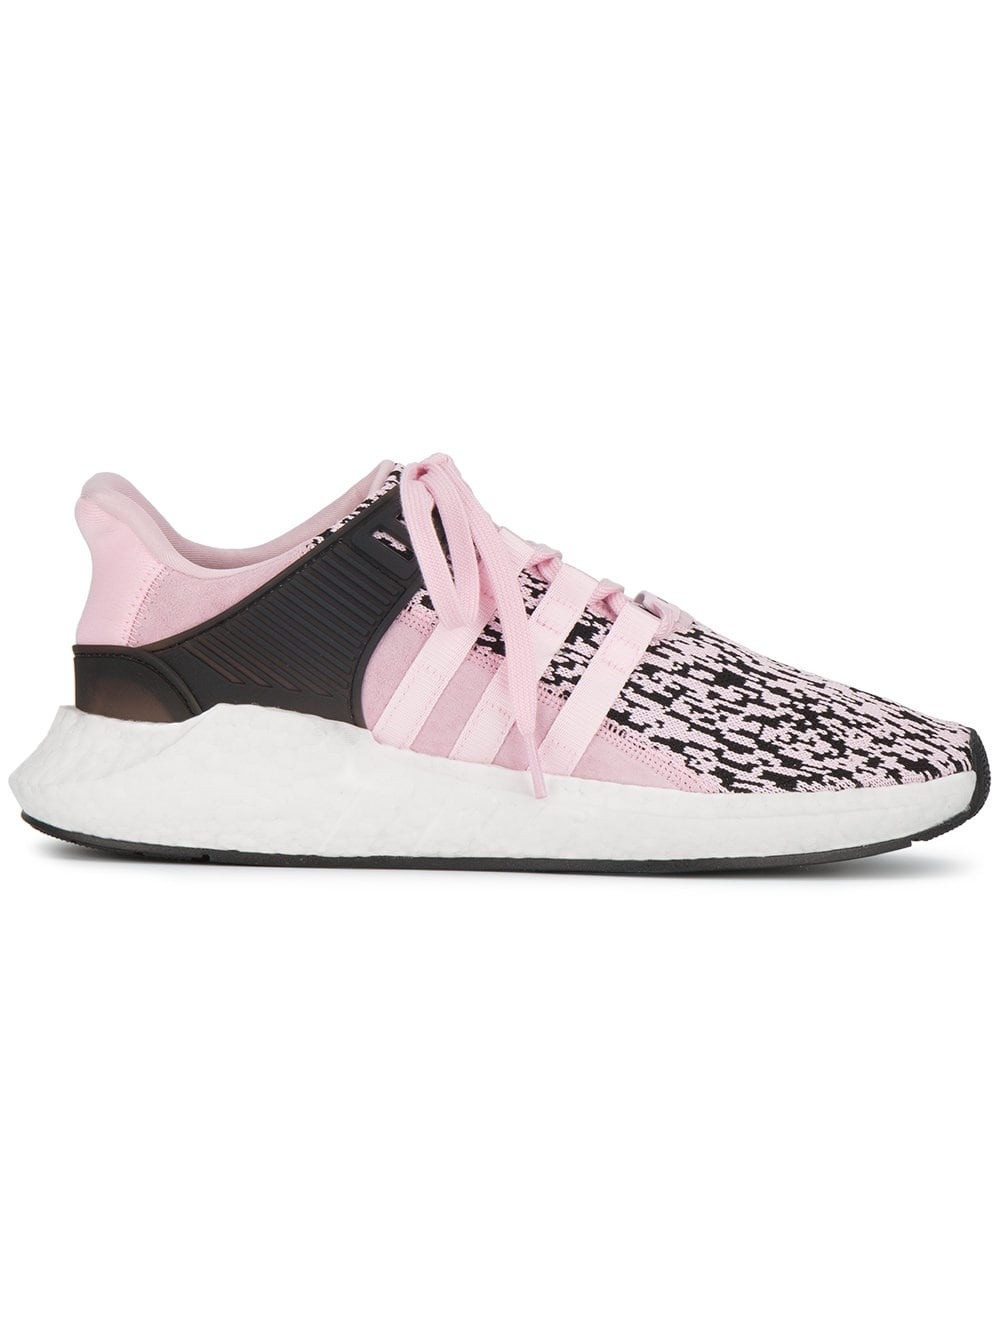 Adidas Originals EQT Support 93/17 | Rose | Sneakers | BZ0583